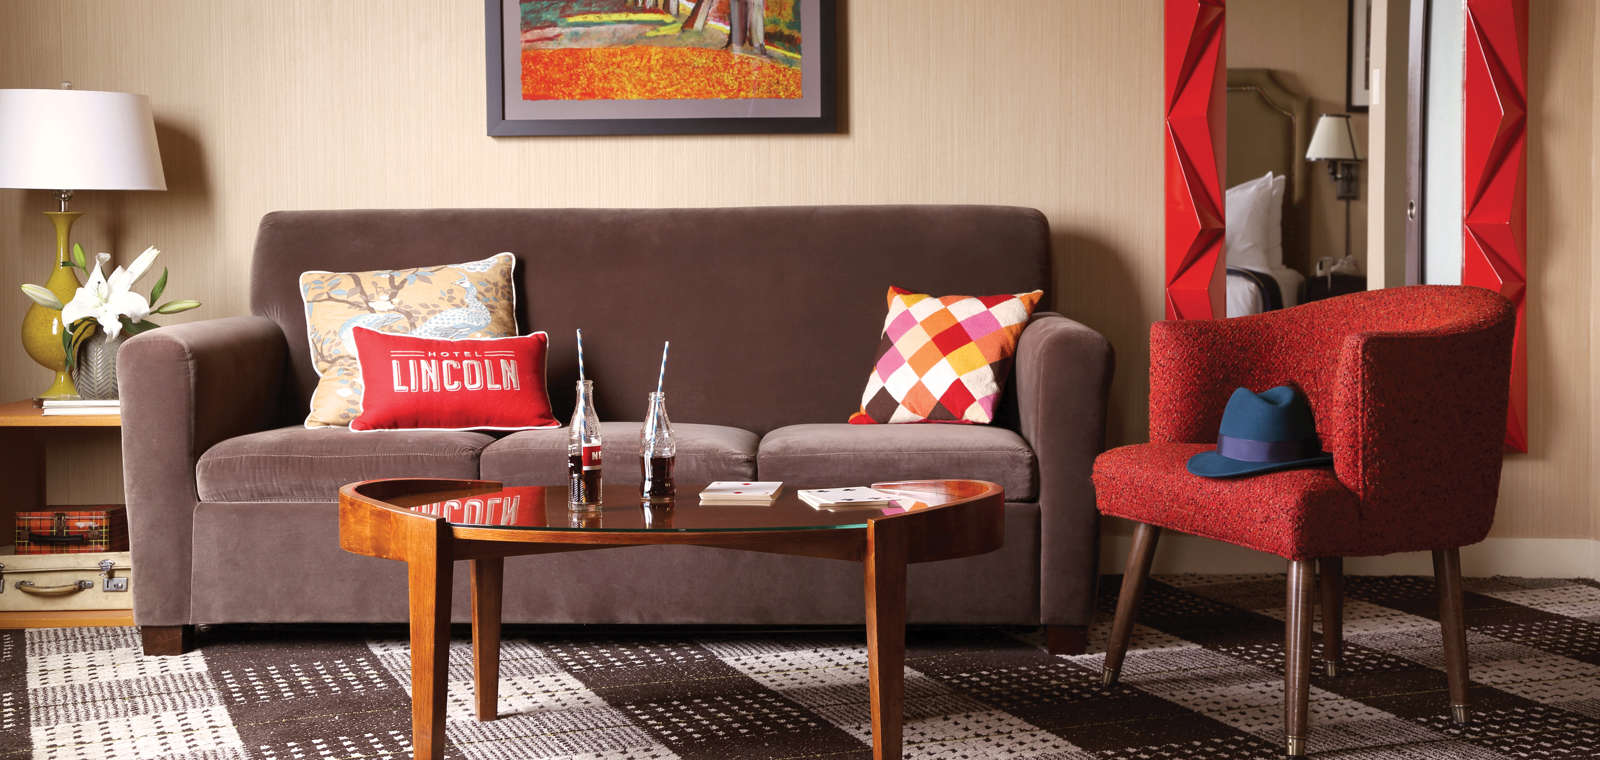 Hotel Lincoln Downtown Chicago Hotel Specials Hotel Lincoln Suite Life At